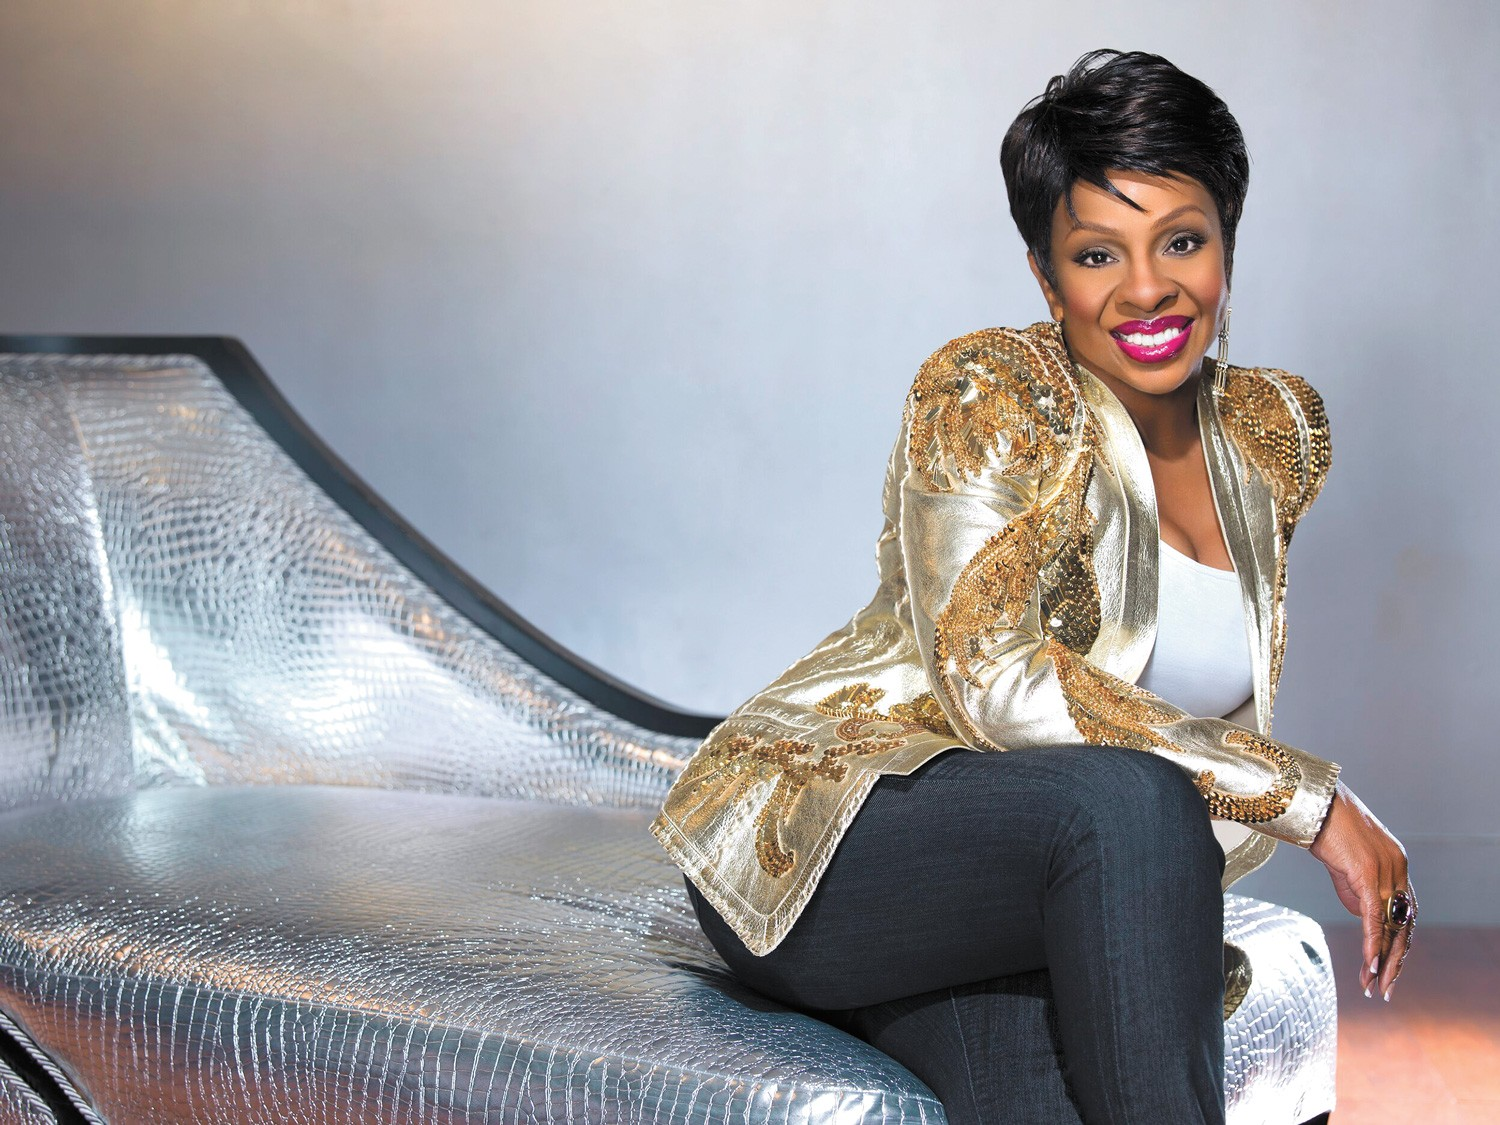 Gladys Knight brings a touch of classy R&B to Sandpoint.